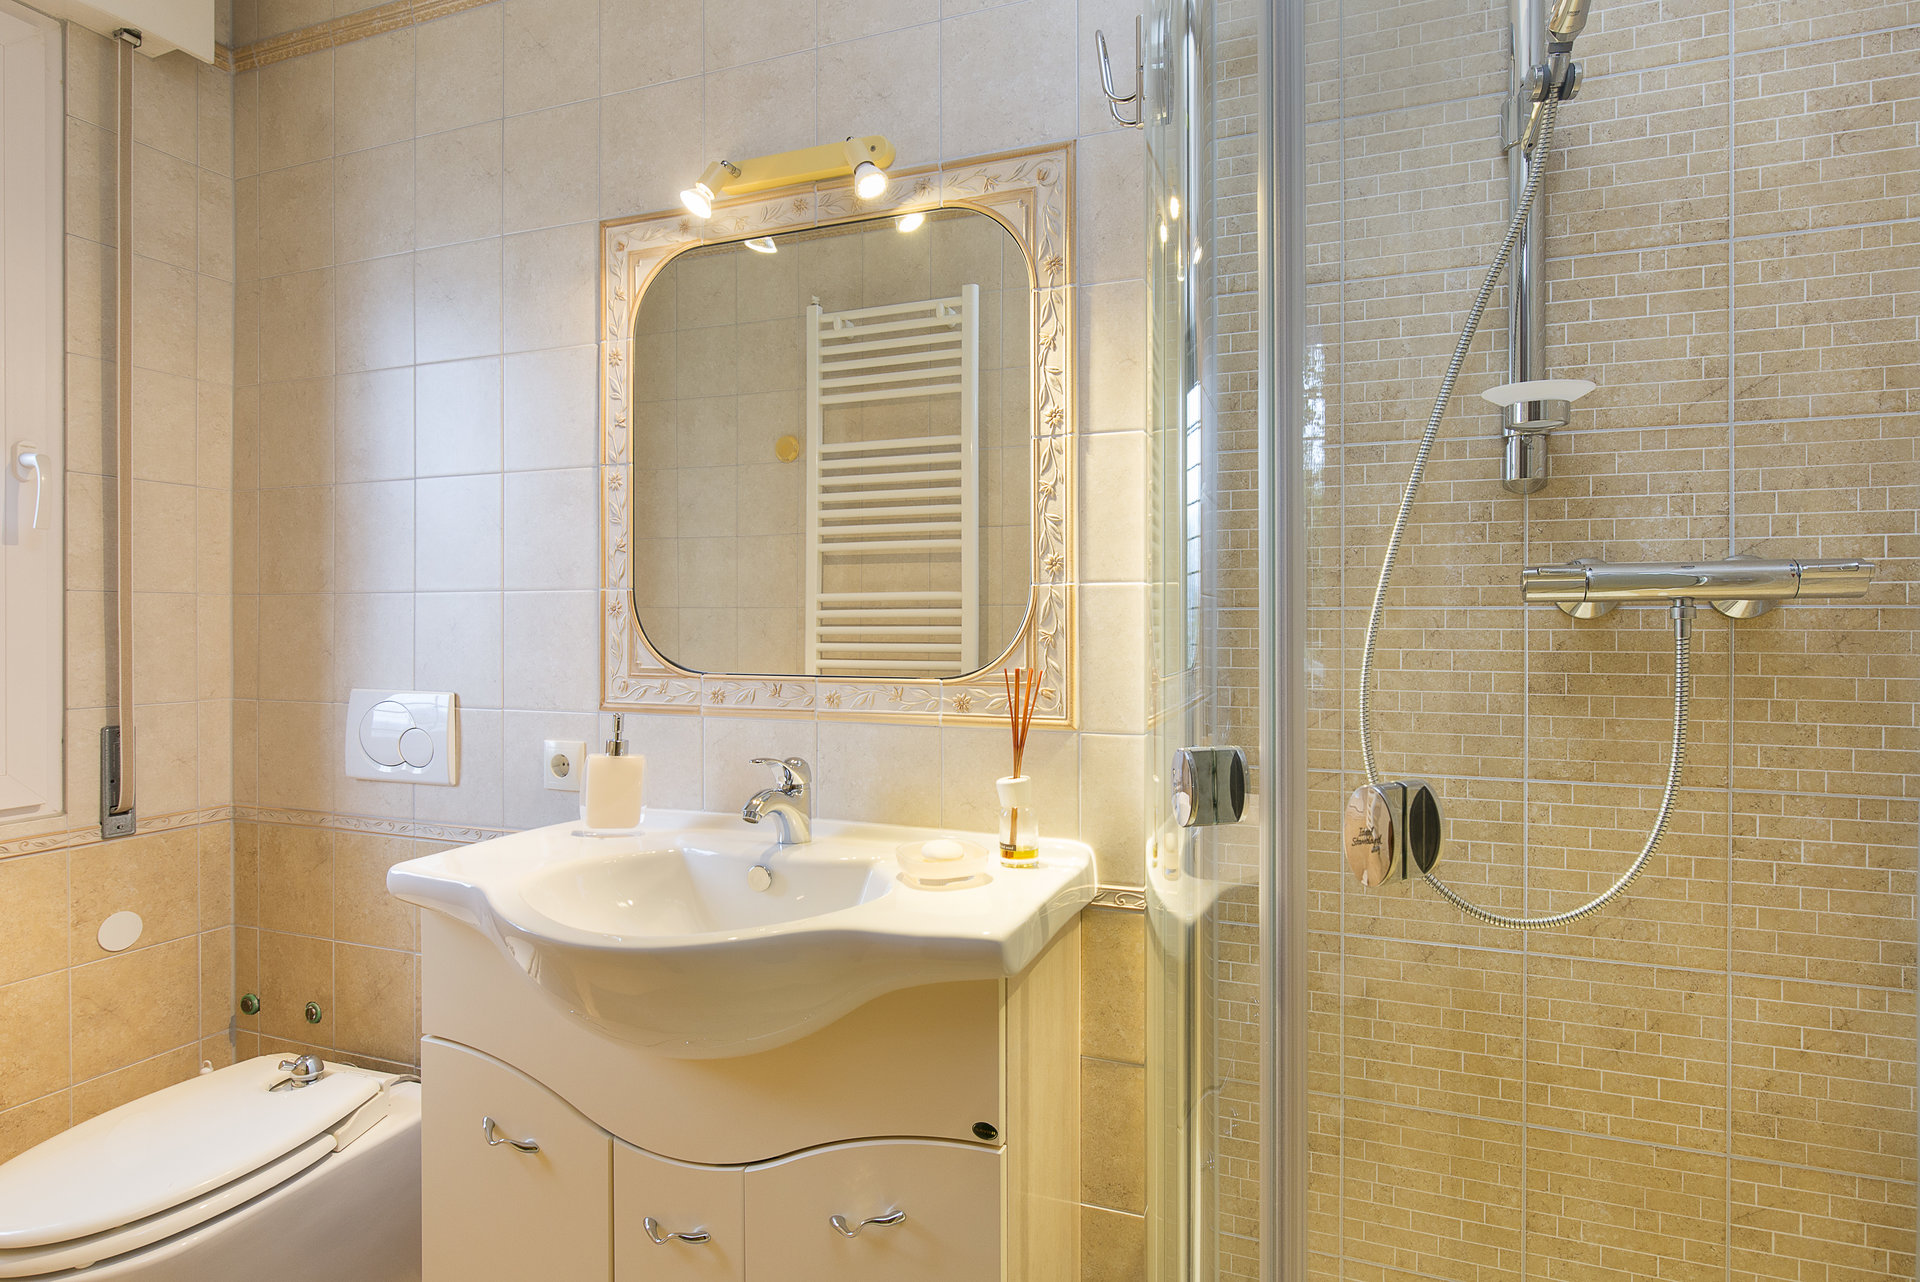 Villa for sale in Stresa with park and view on Borromean islands - bathroom with shower